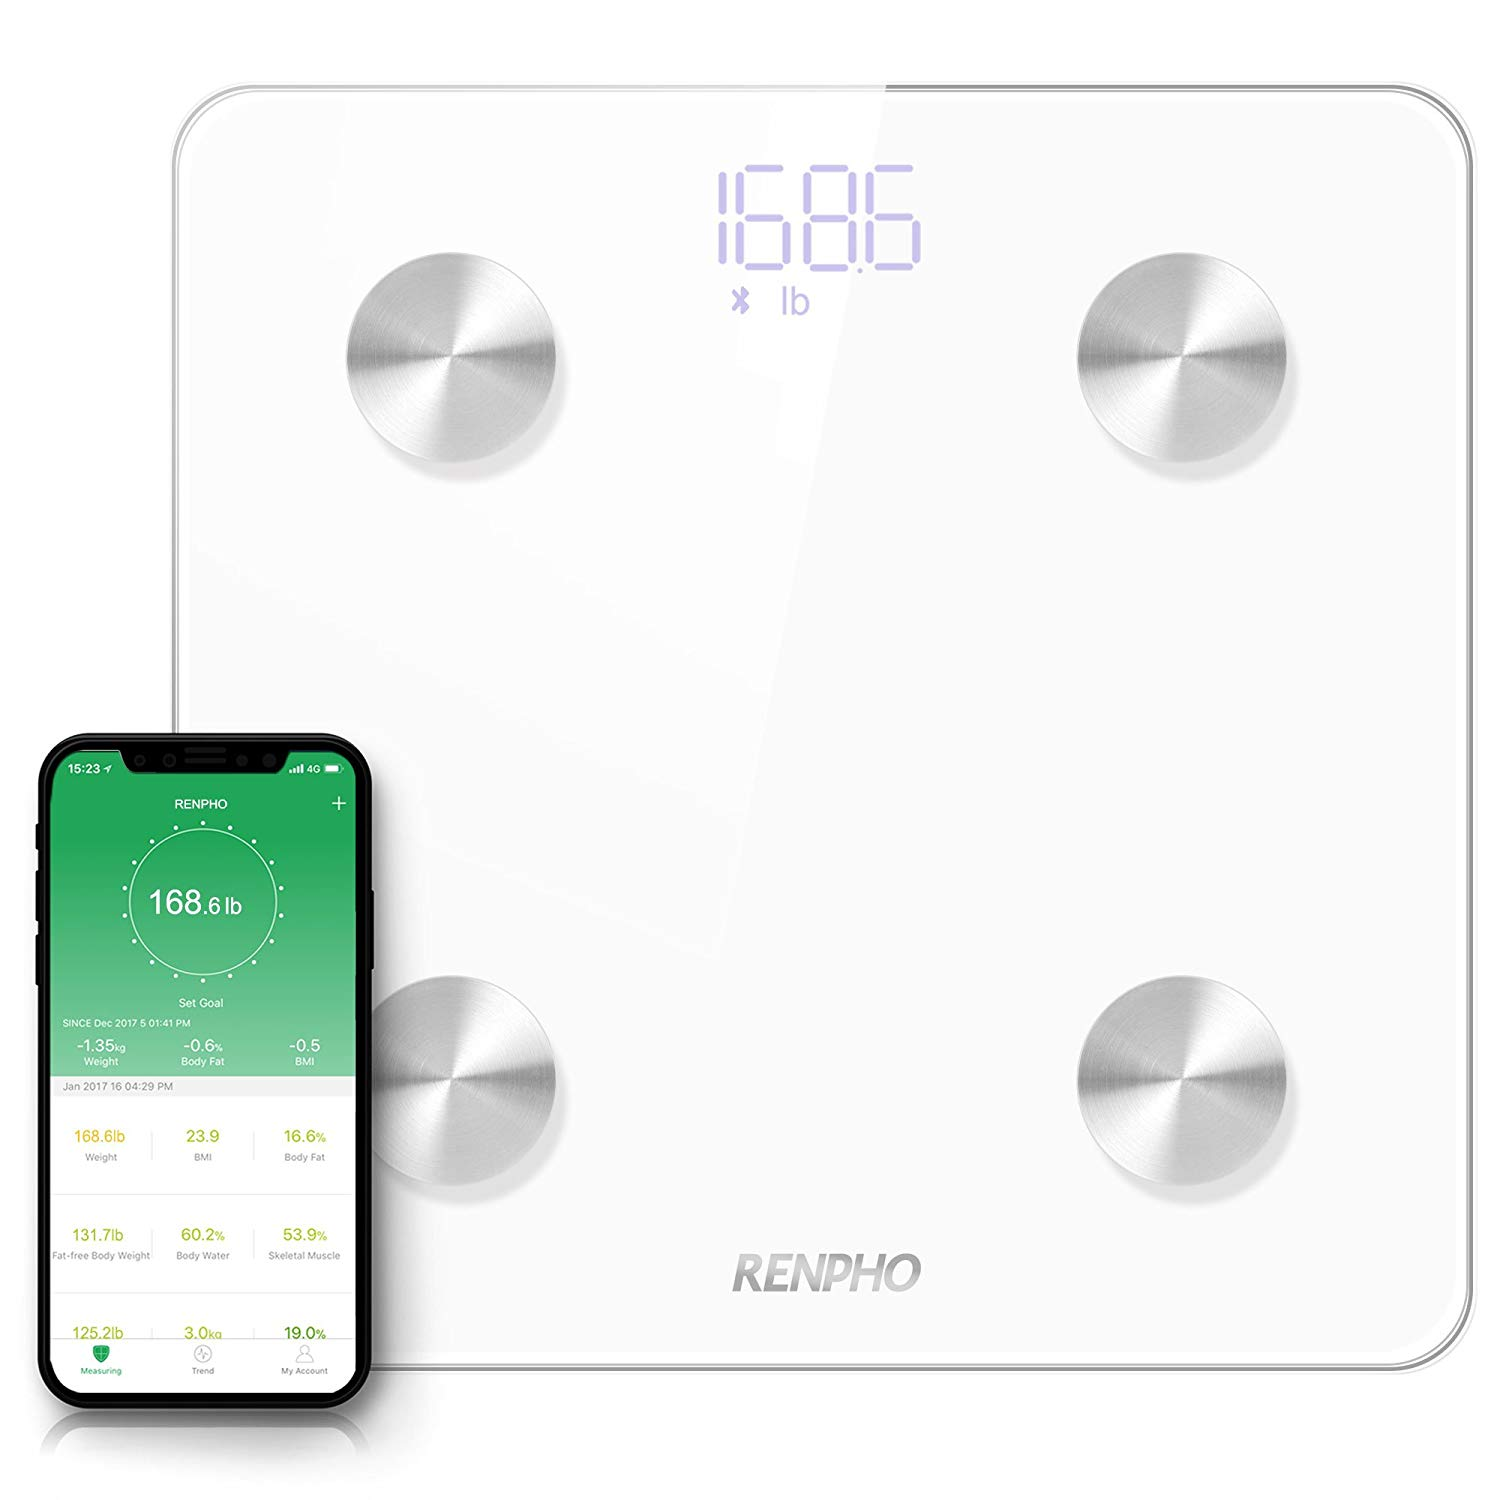 6 best and most accurate bathroom scales 1 6 Most Accurate Bathroom Scales - Body Composition Monitor for All